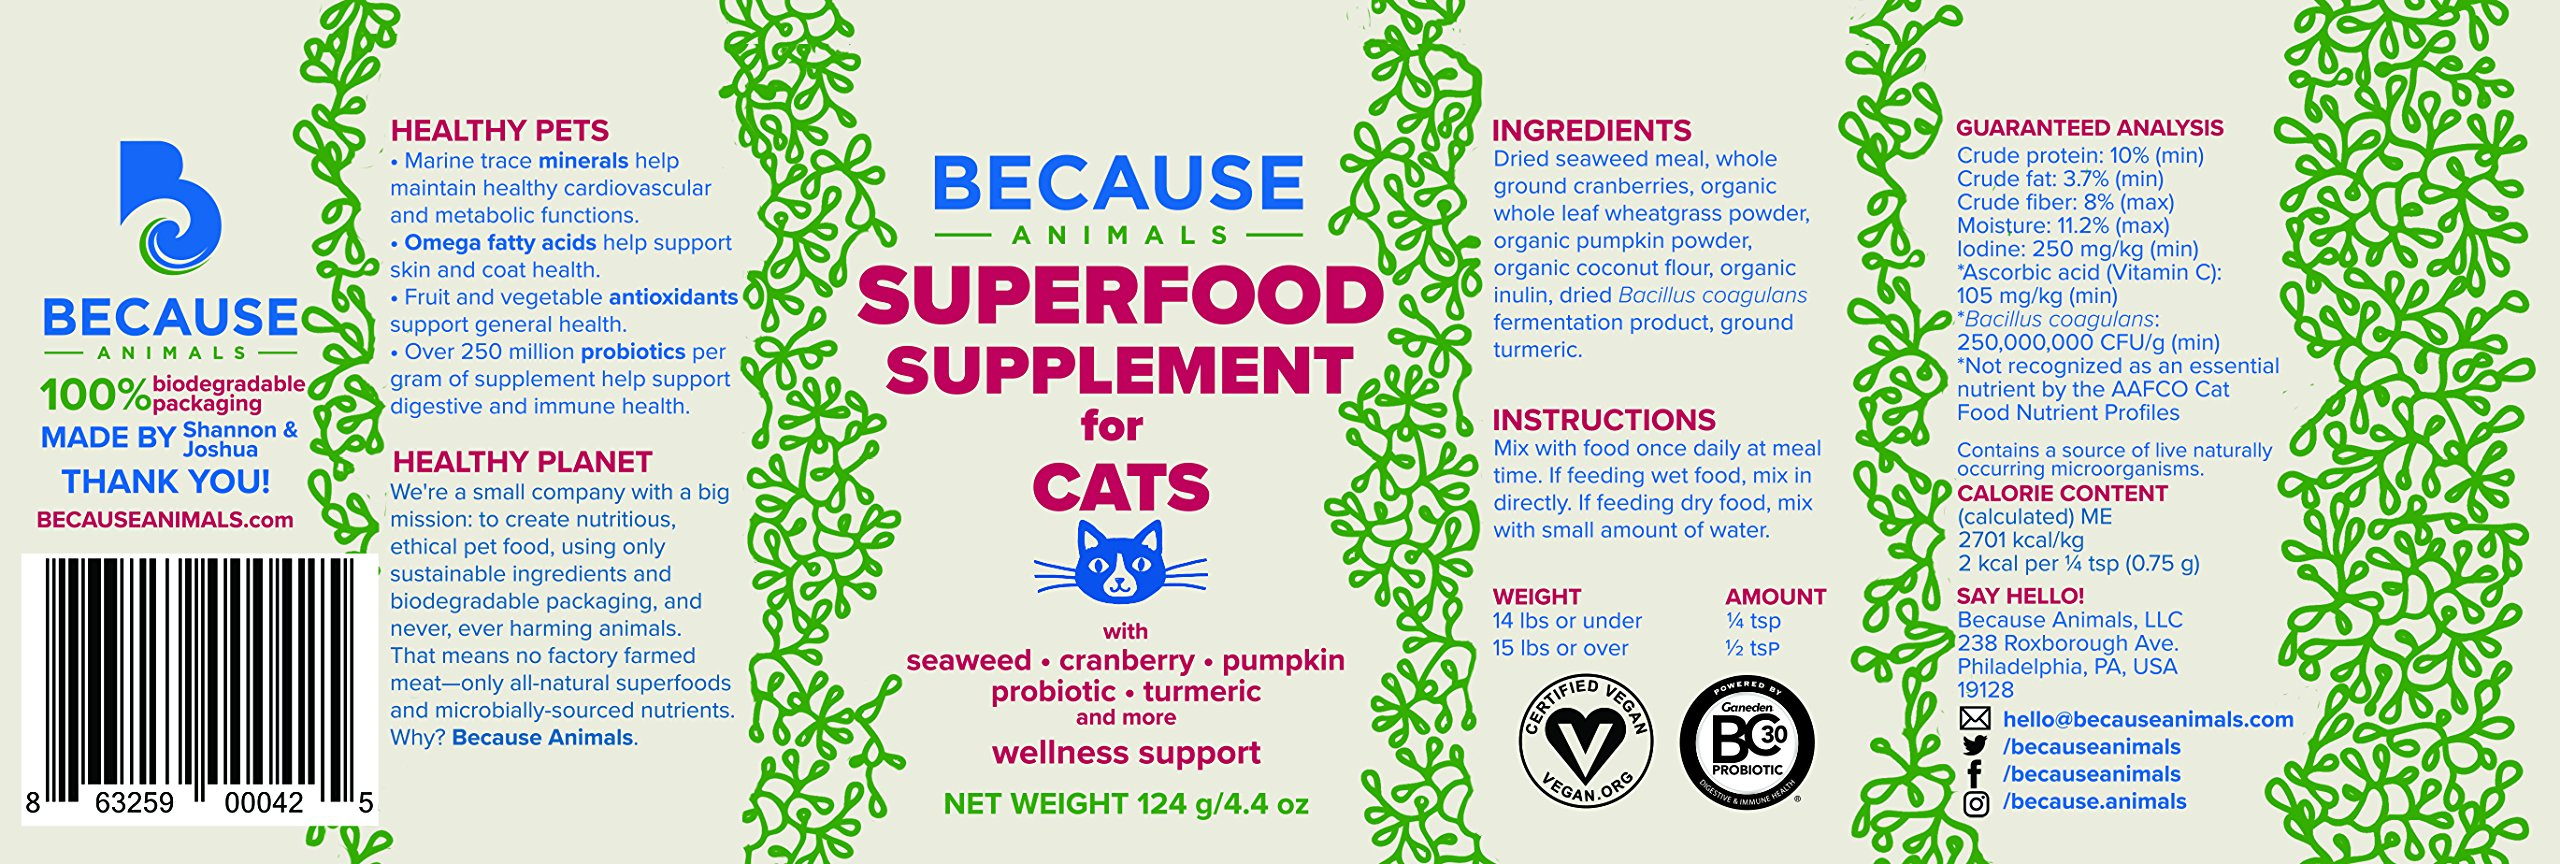 Because Animals Superfood & Probiotic Supplement for Cats (4.4oz) - All-Natural, Human-Grade Ingredients - With Vitamins, Minerals, Antioxidants and More for Better Digestion, Coat and Overall Health by Because Animals